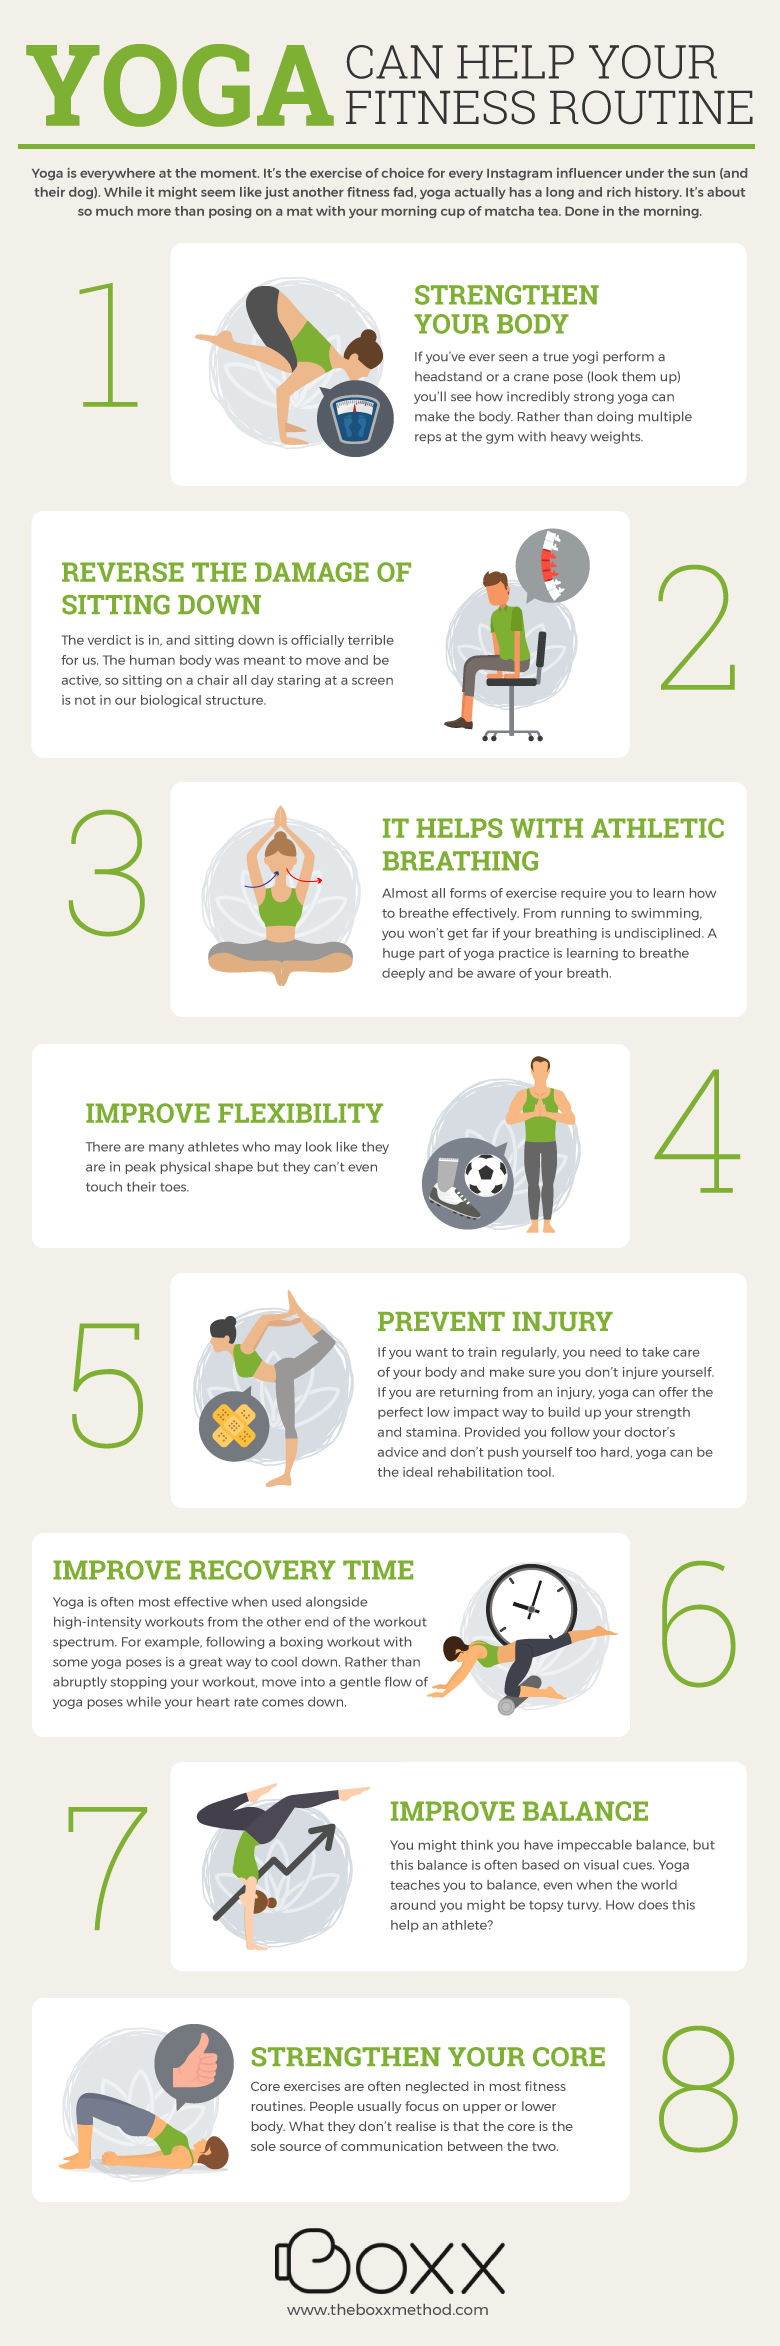 Why yoga can help your fitness routine